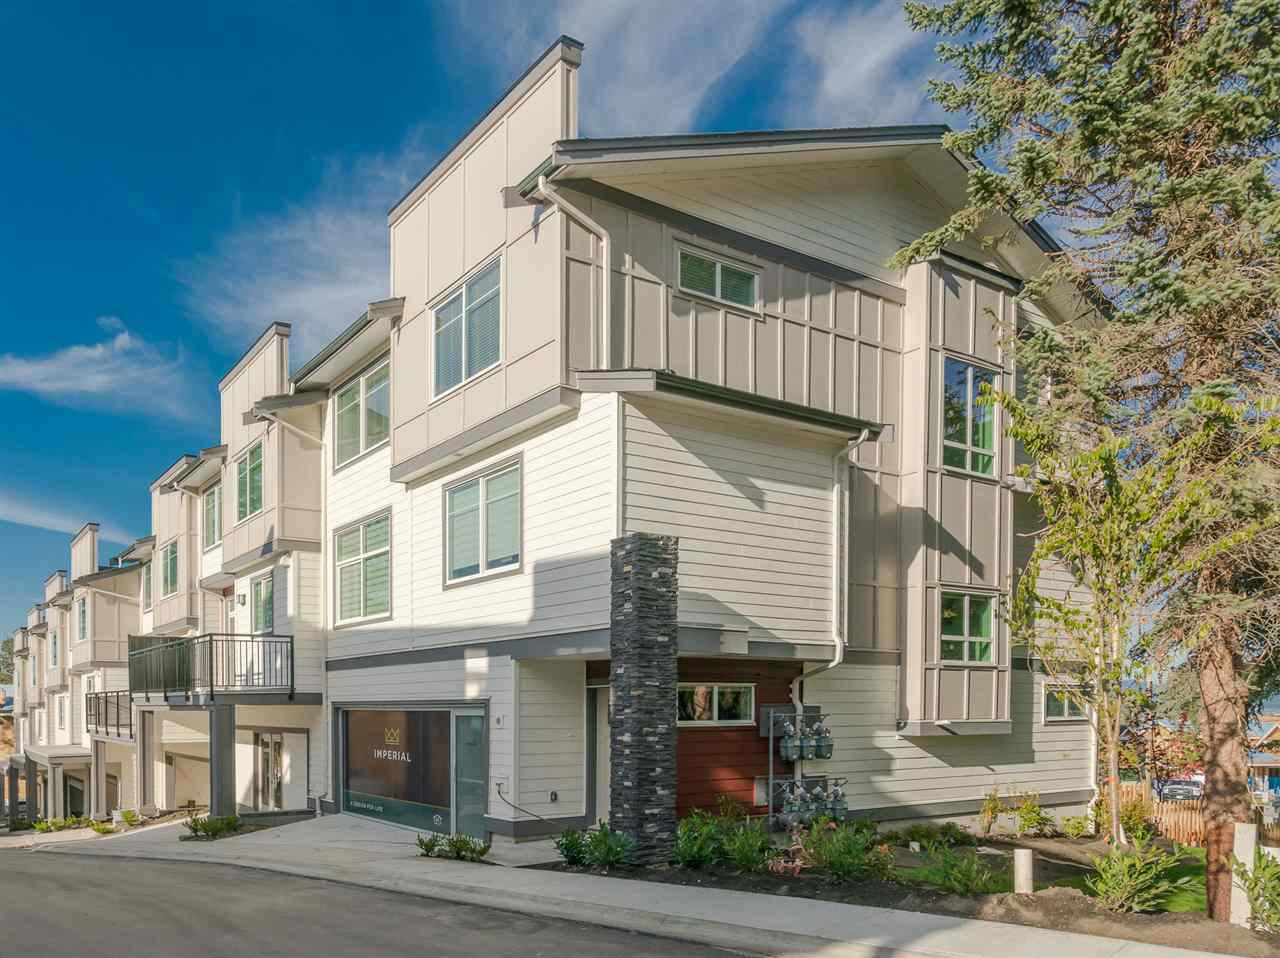 """Main Photo: 9 15633 MOUNTAIN VIEW Drive in Surrey: Grandview Surrey Townhouse for sale in """"Imperial"""" (South Surrey White Rock)  : MLS®# R2221269"""